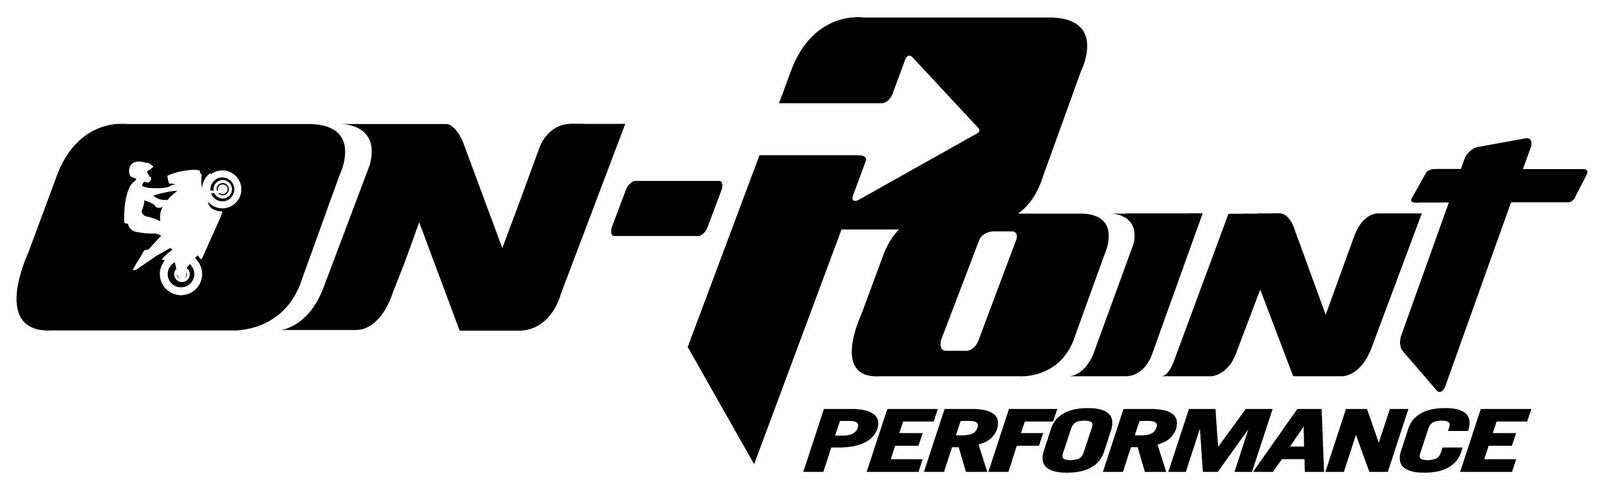 onptperformance